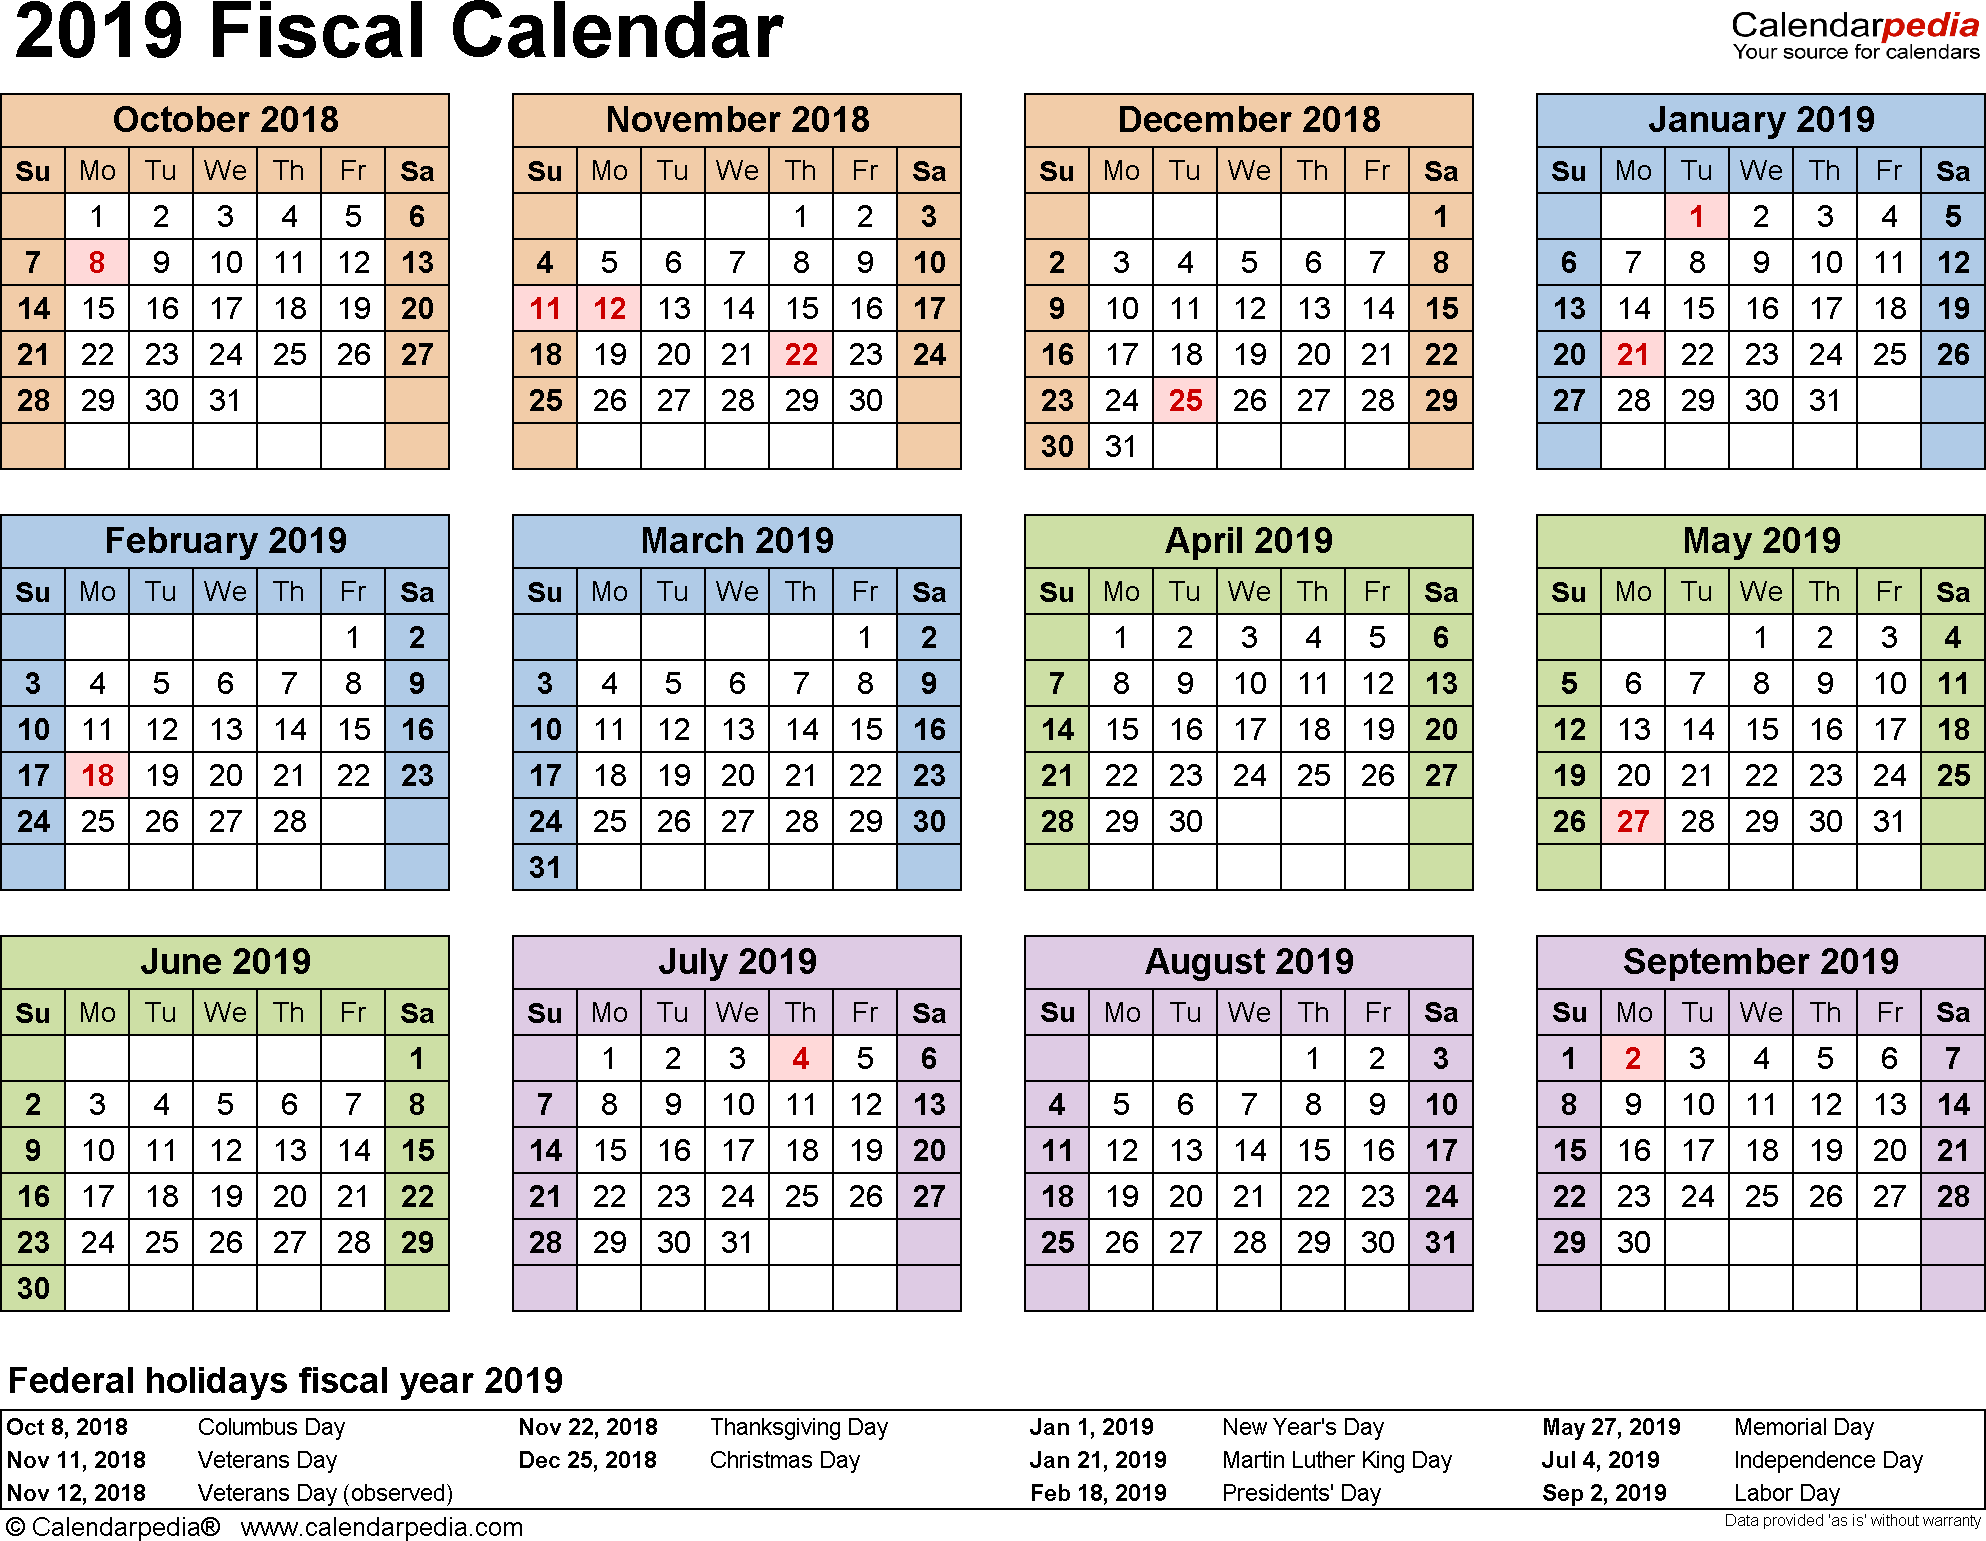 Template 4: Fiscal year calendar 2019 for Word, landscape orientation, year at a glance, 1 page